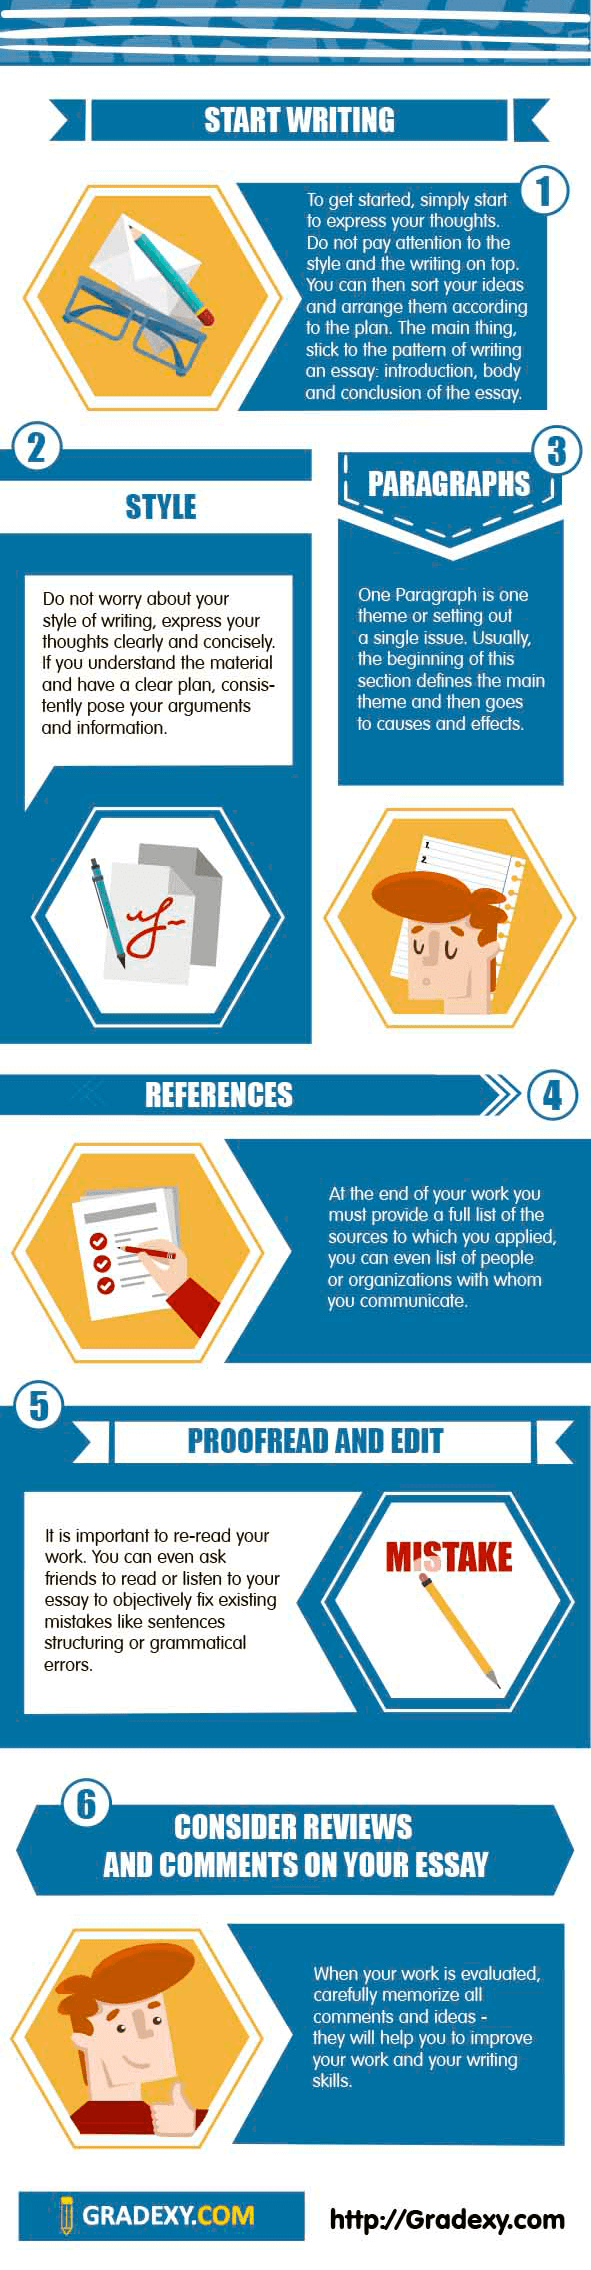 advice on writing essay infographics 2